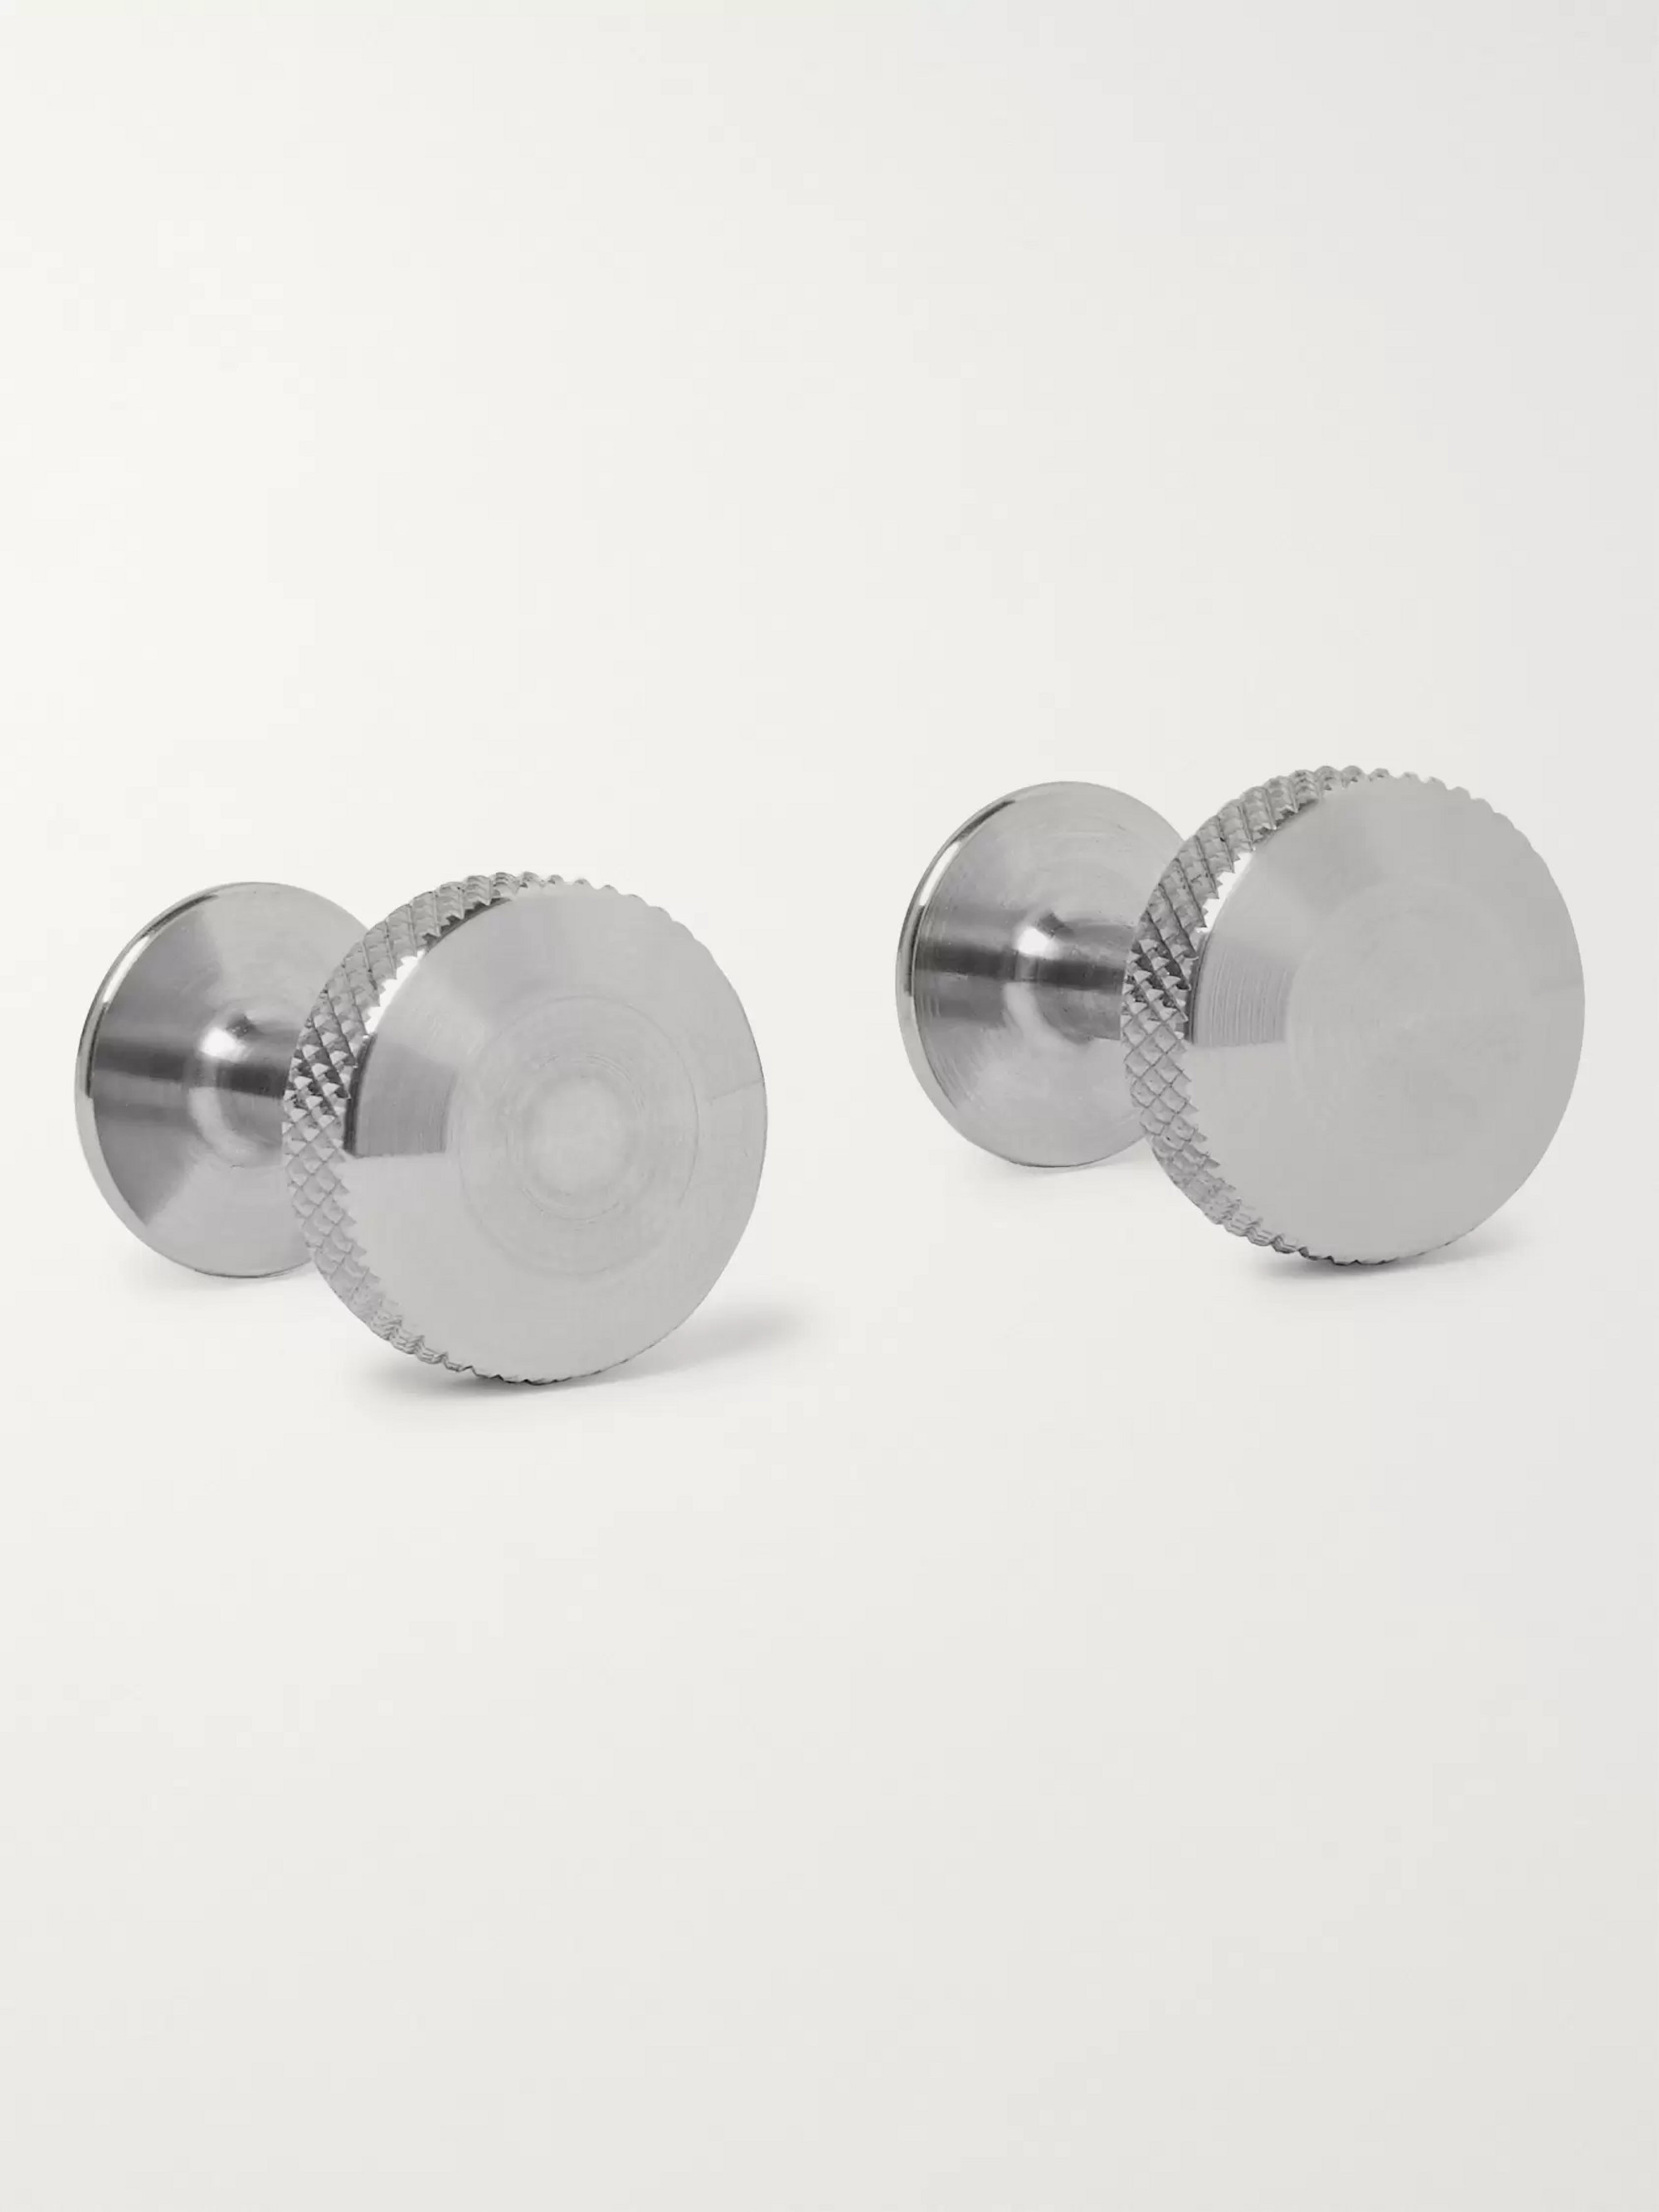 Alice Made This Alexander Steel Cufflinks